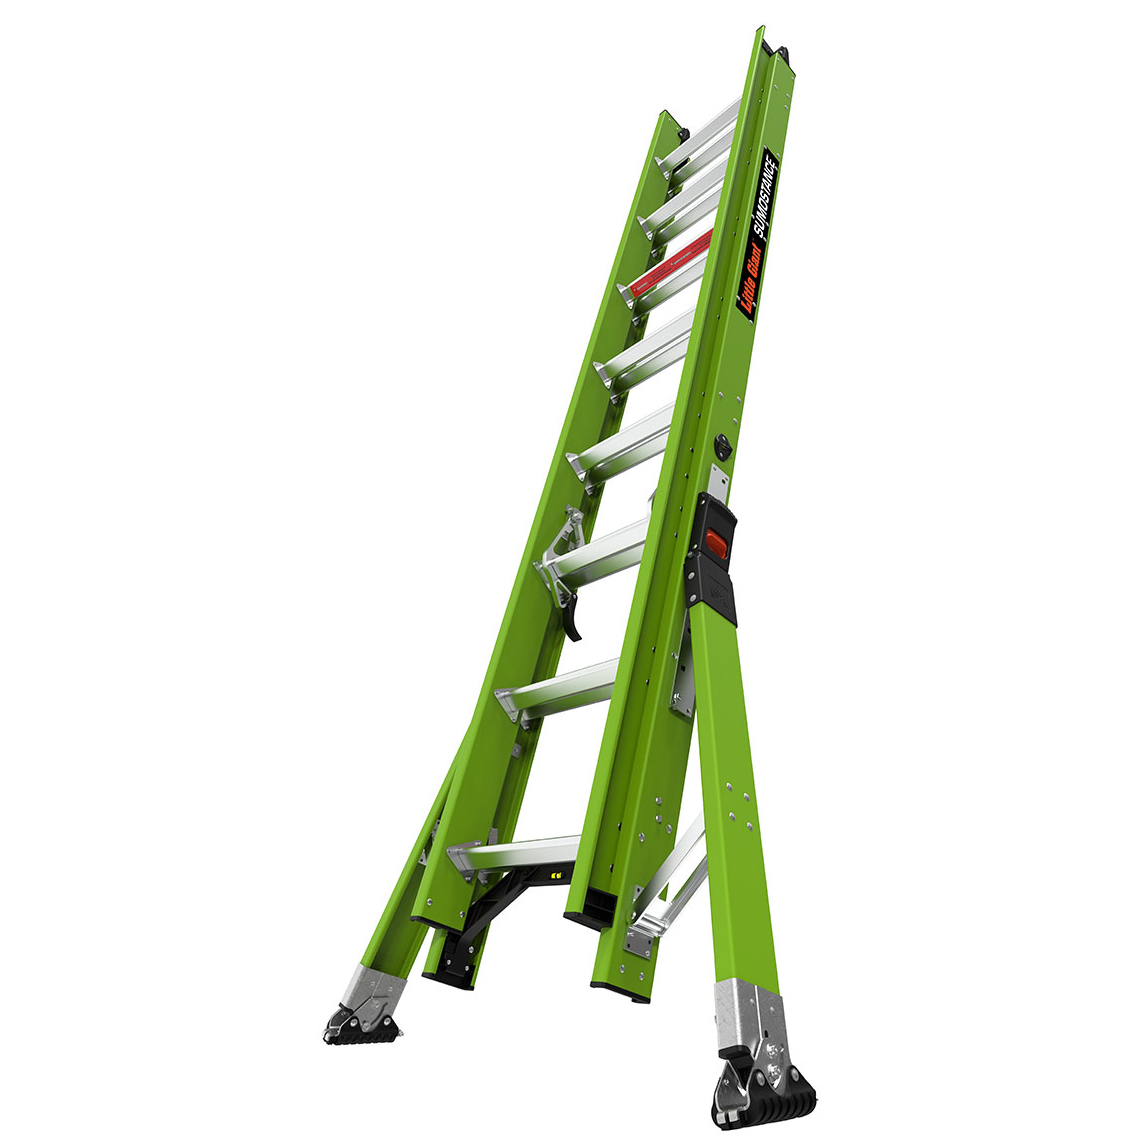 16 Ft. HyperLite SumoStance Fiberglass Extension Ladder - Type IAA